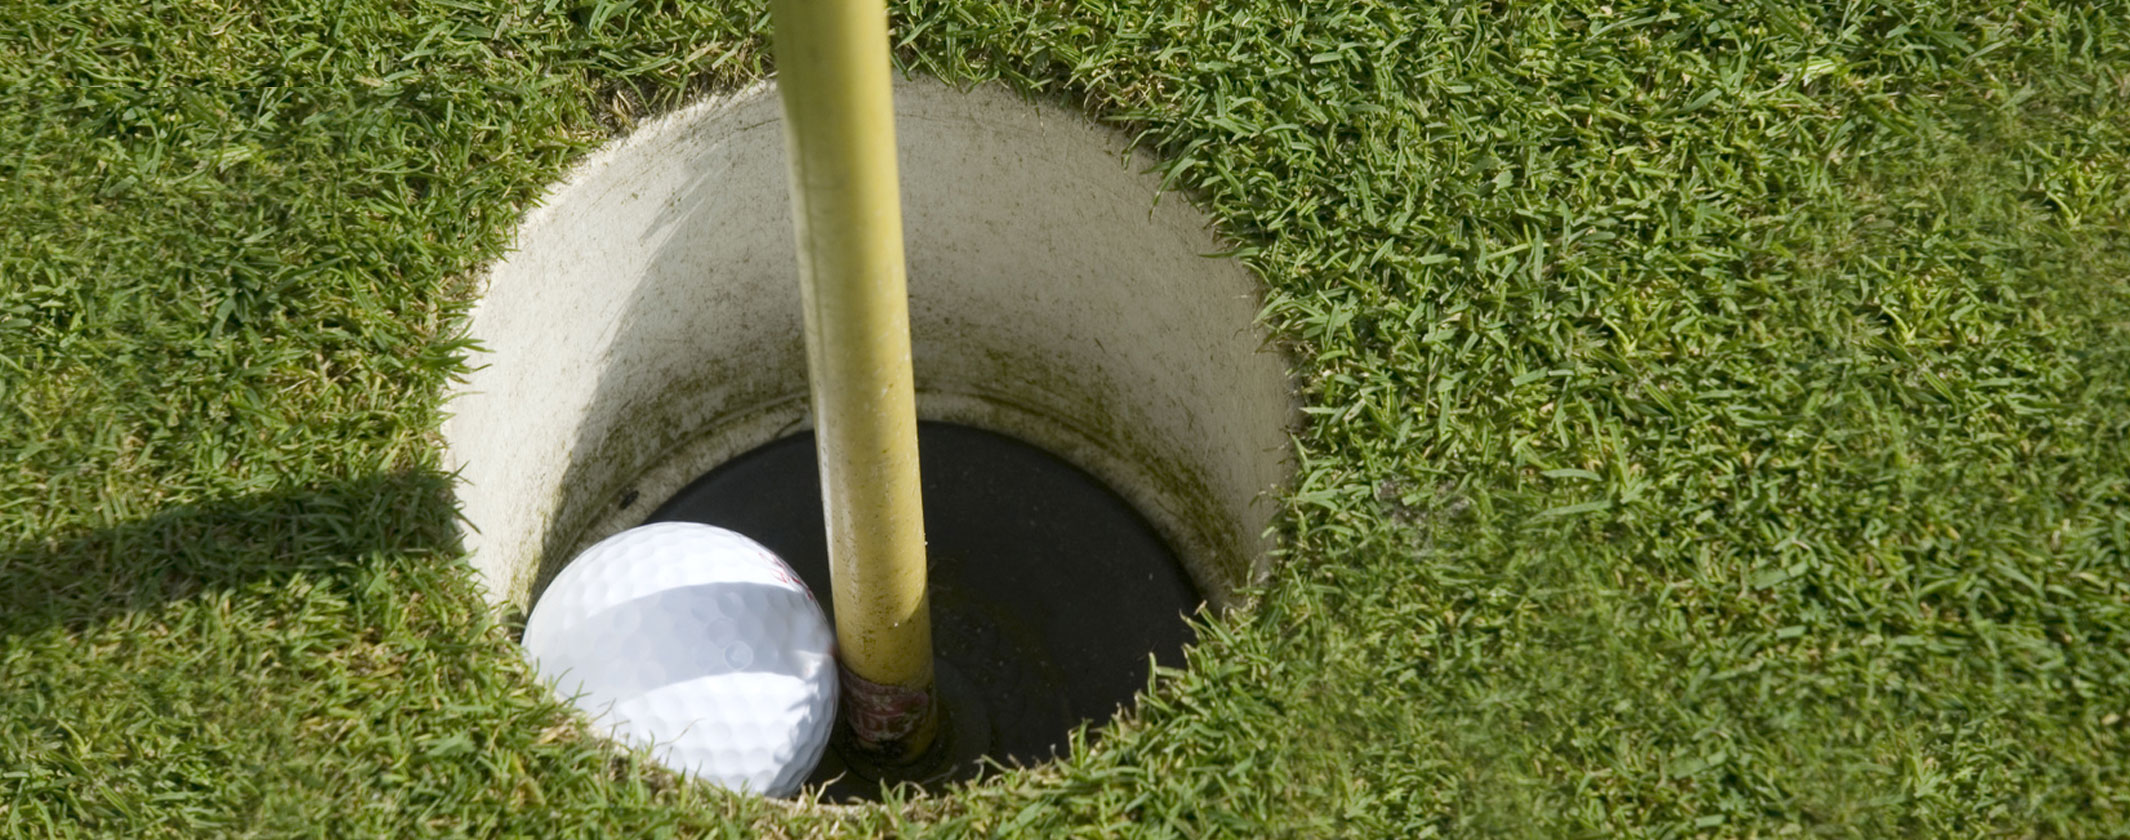 golf-hole-in-one-2130x840